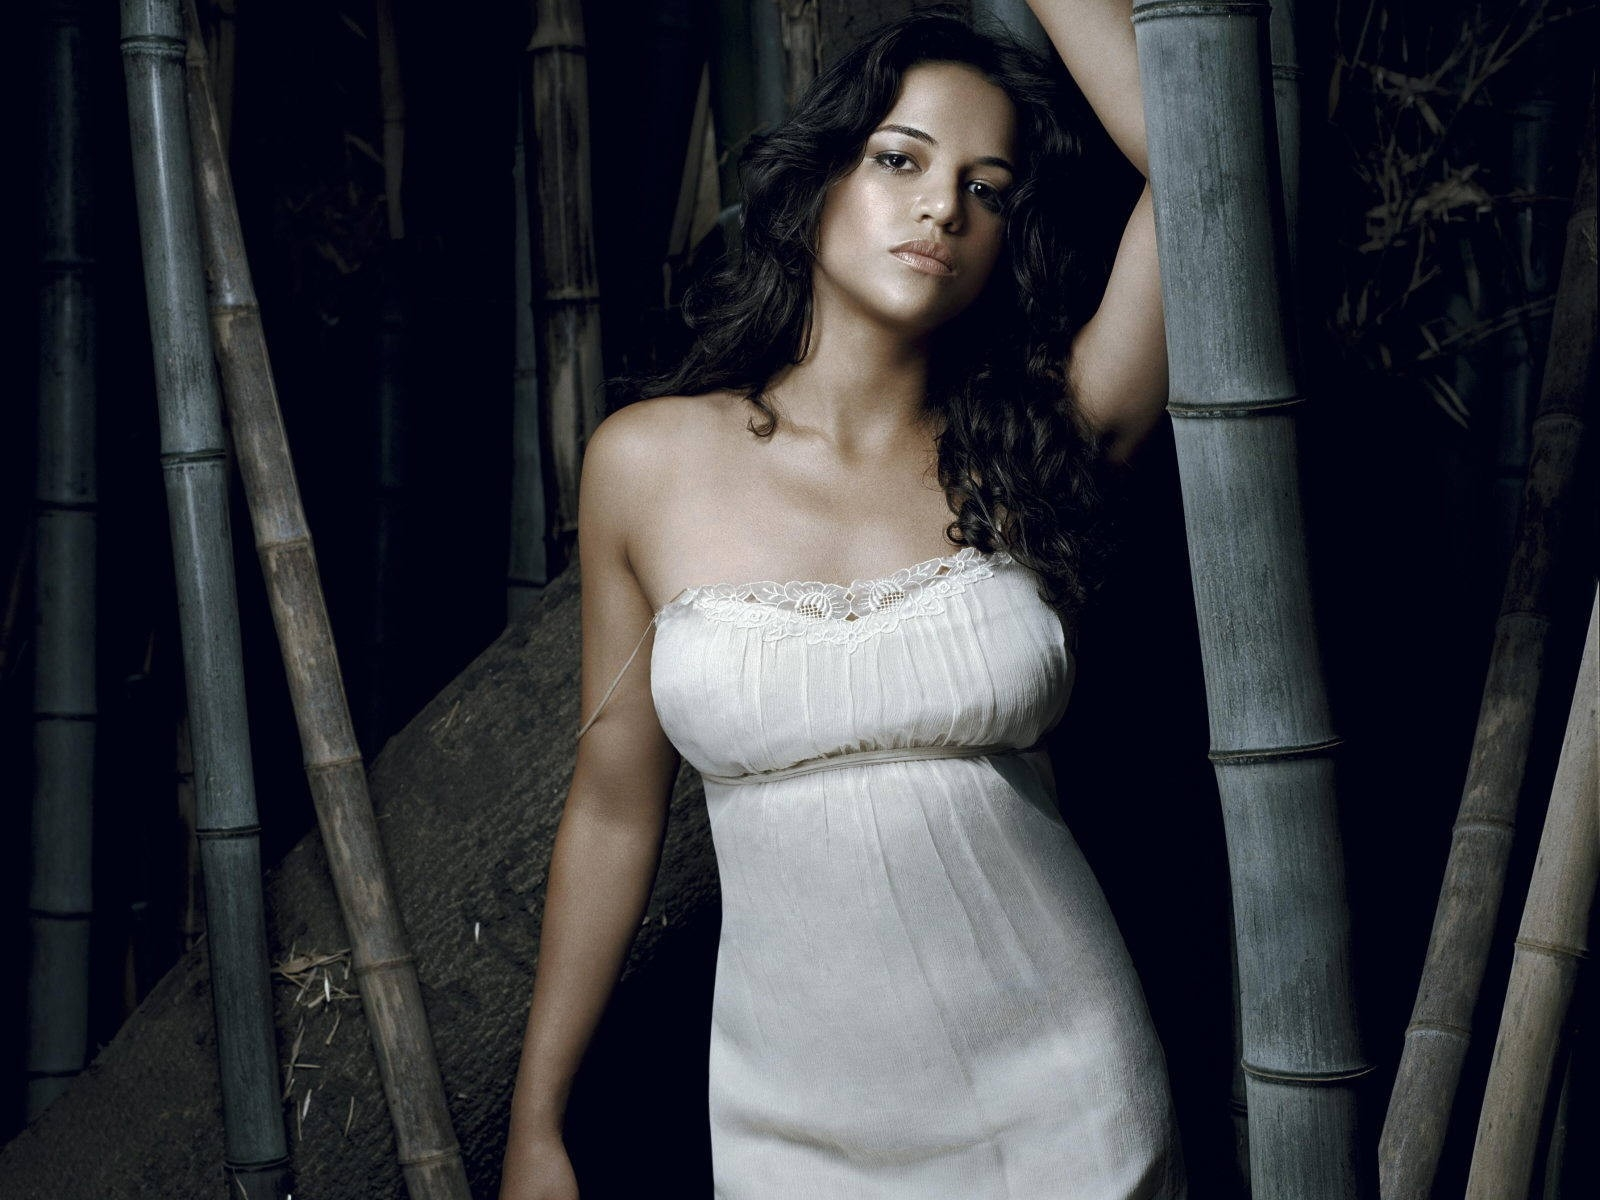 Wallpaper di Michelle Rodriguez - 41